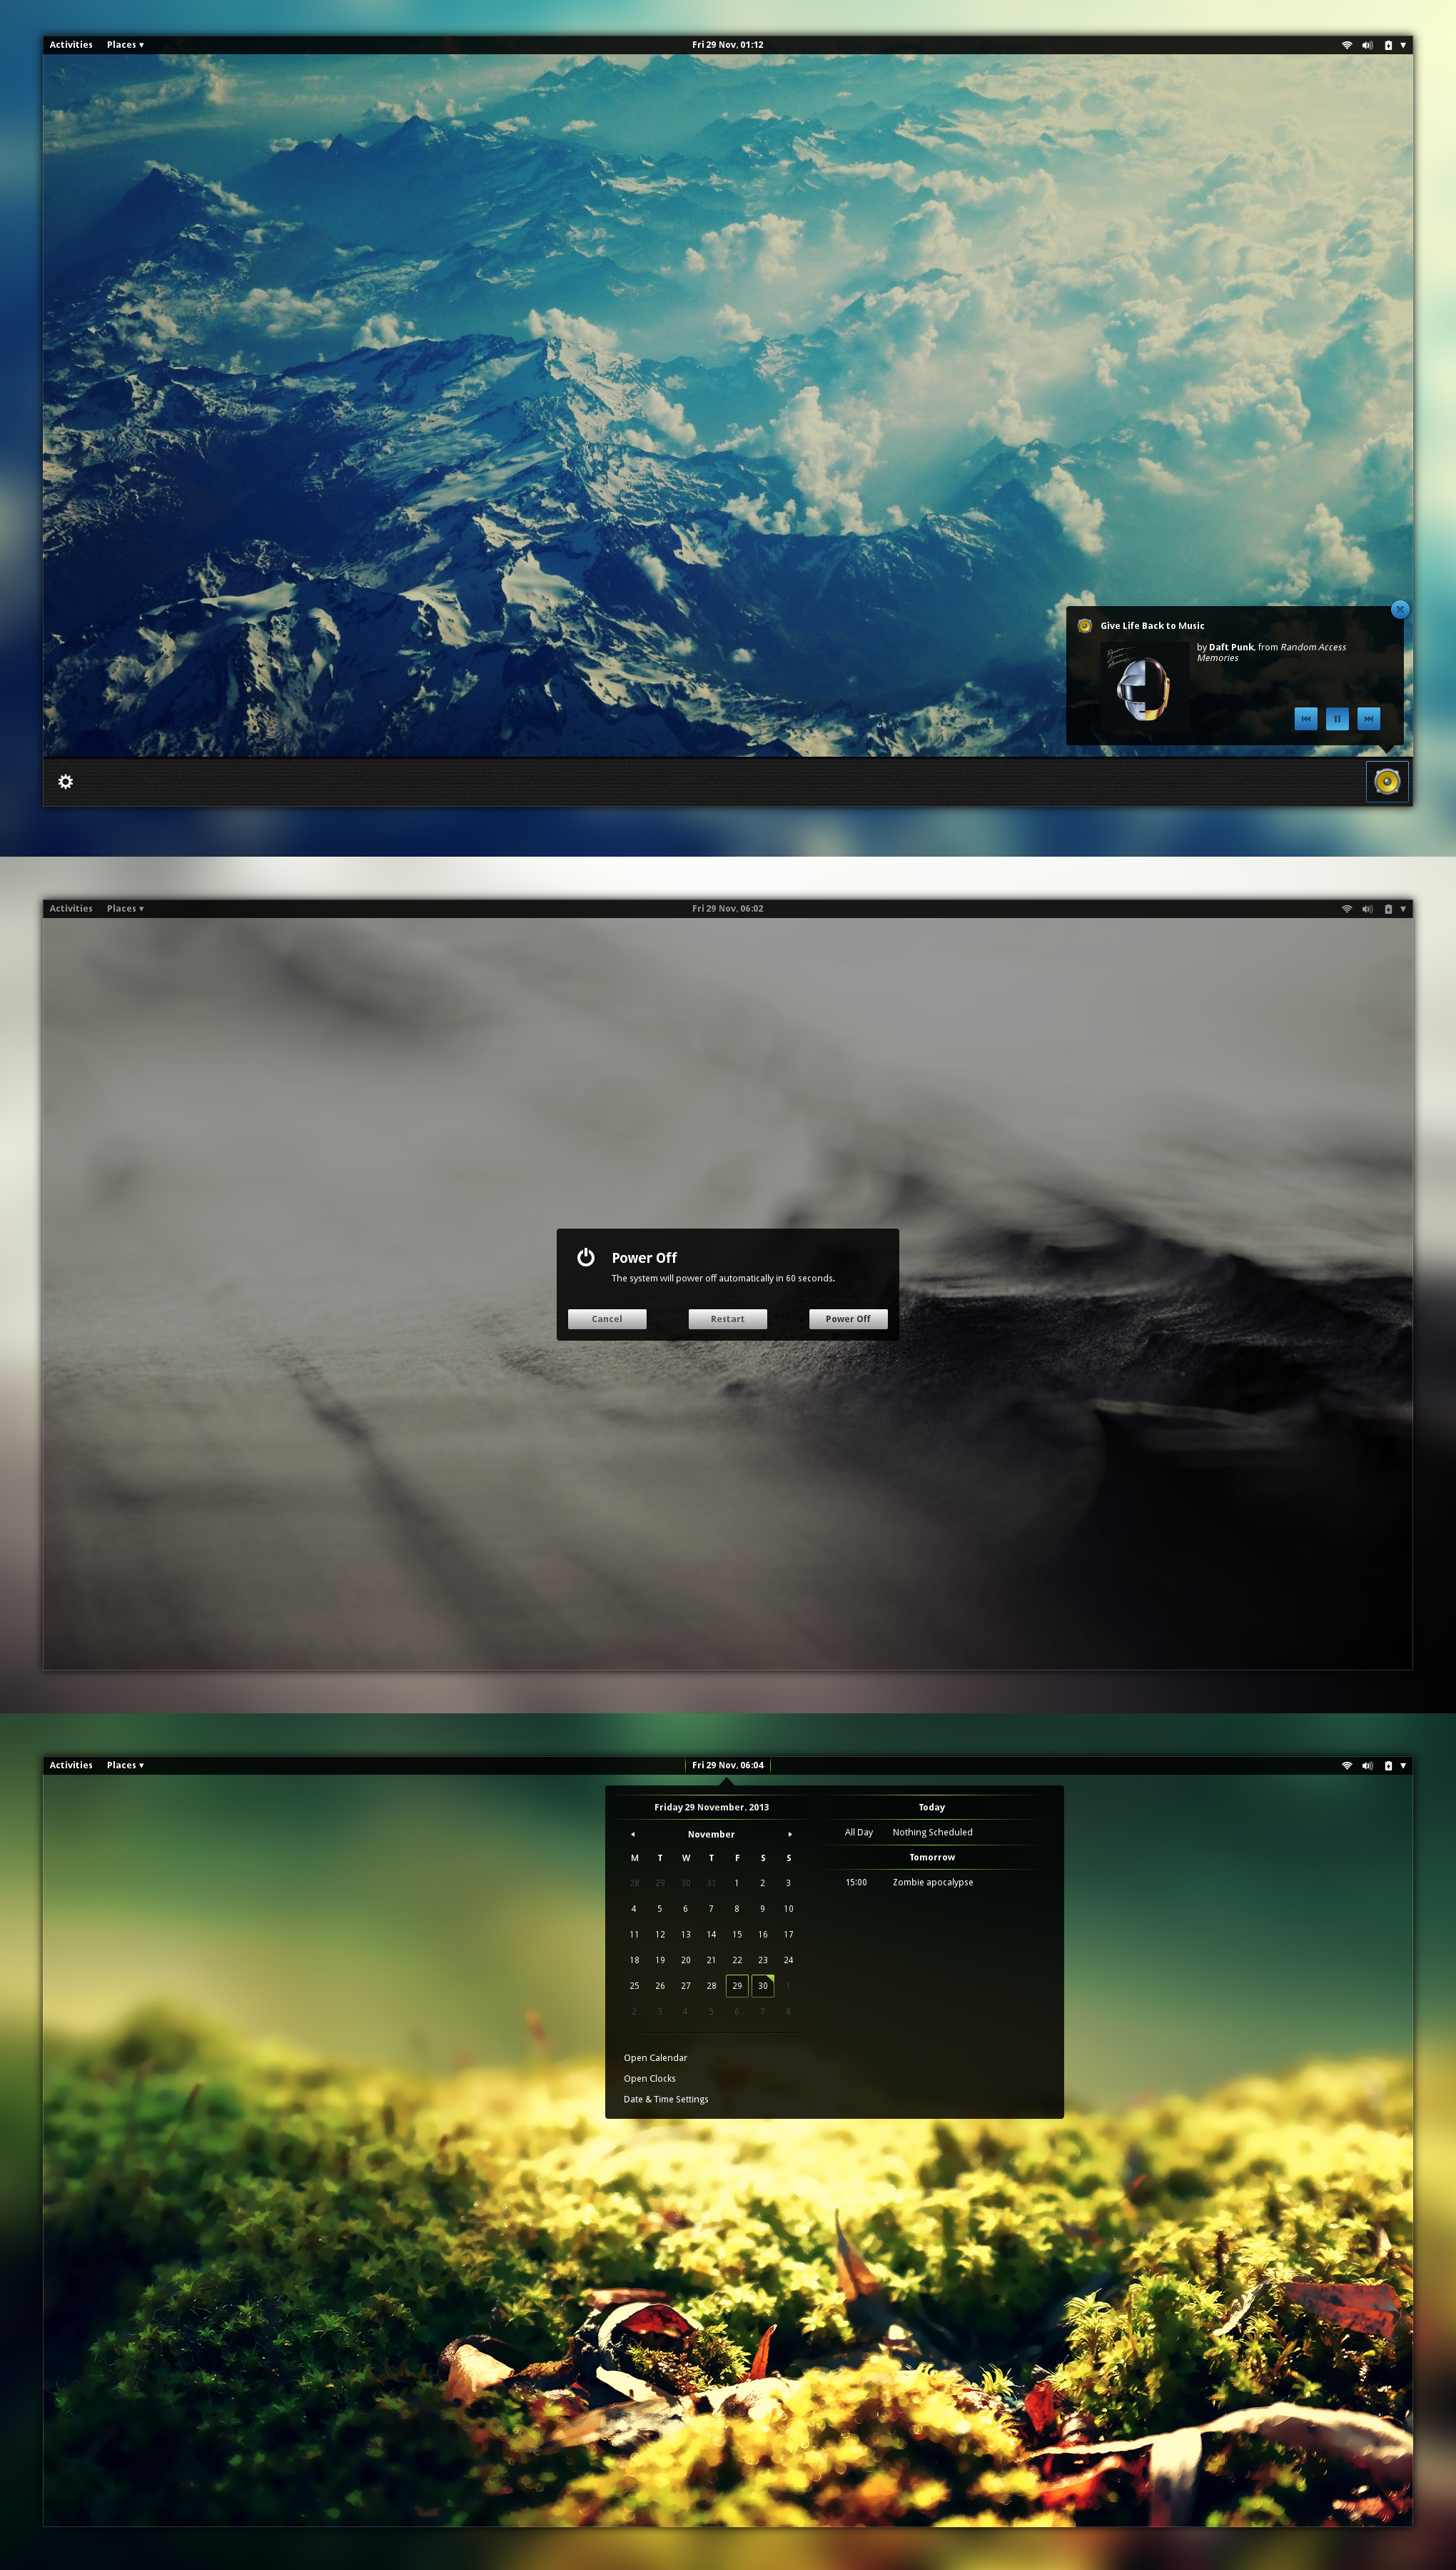 Tyr (gnome-shell 3.10 theme)